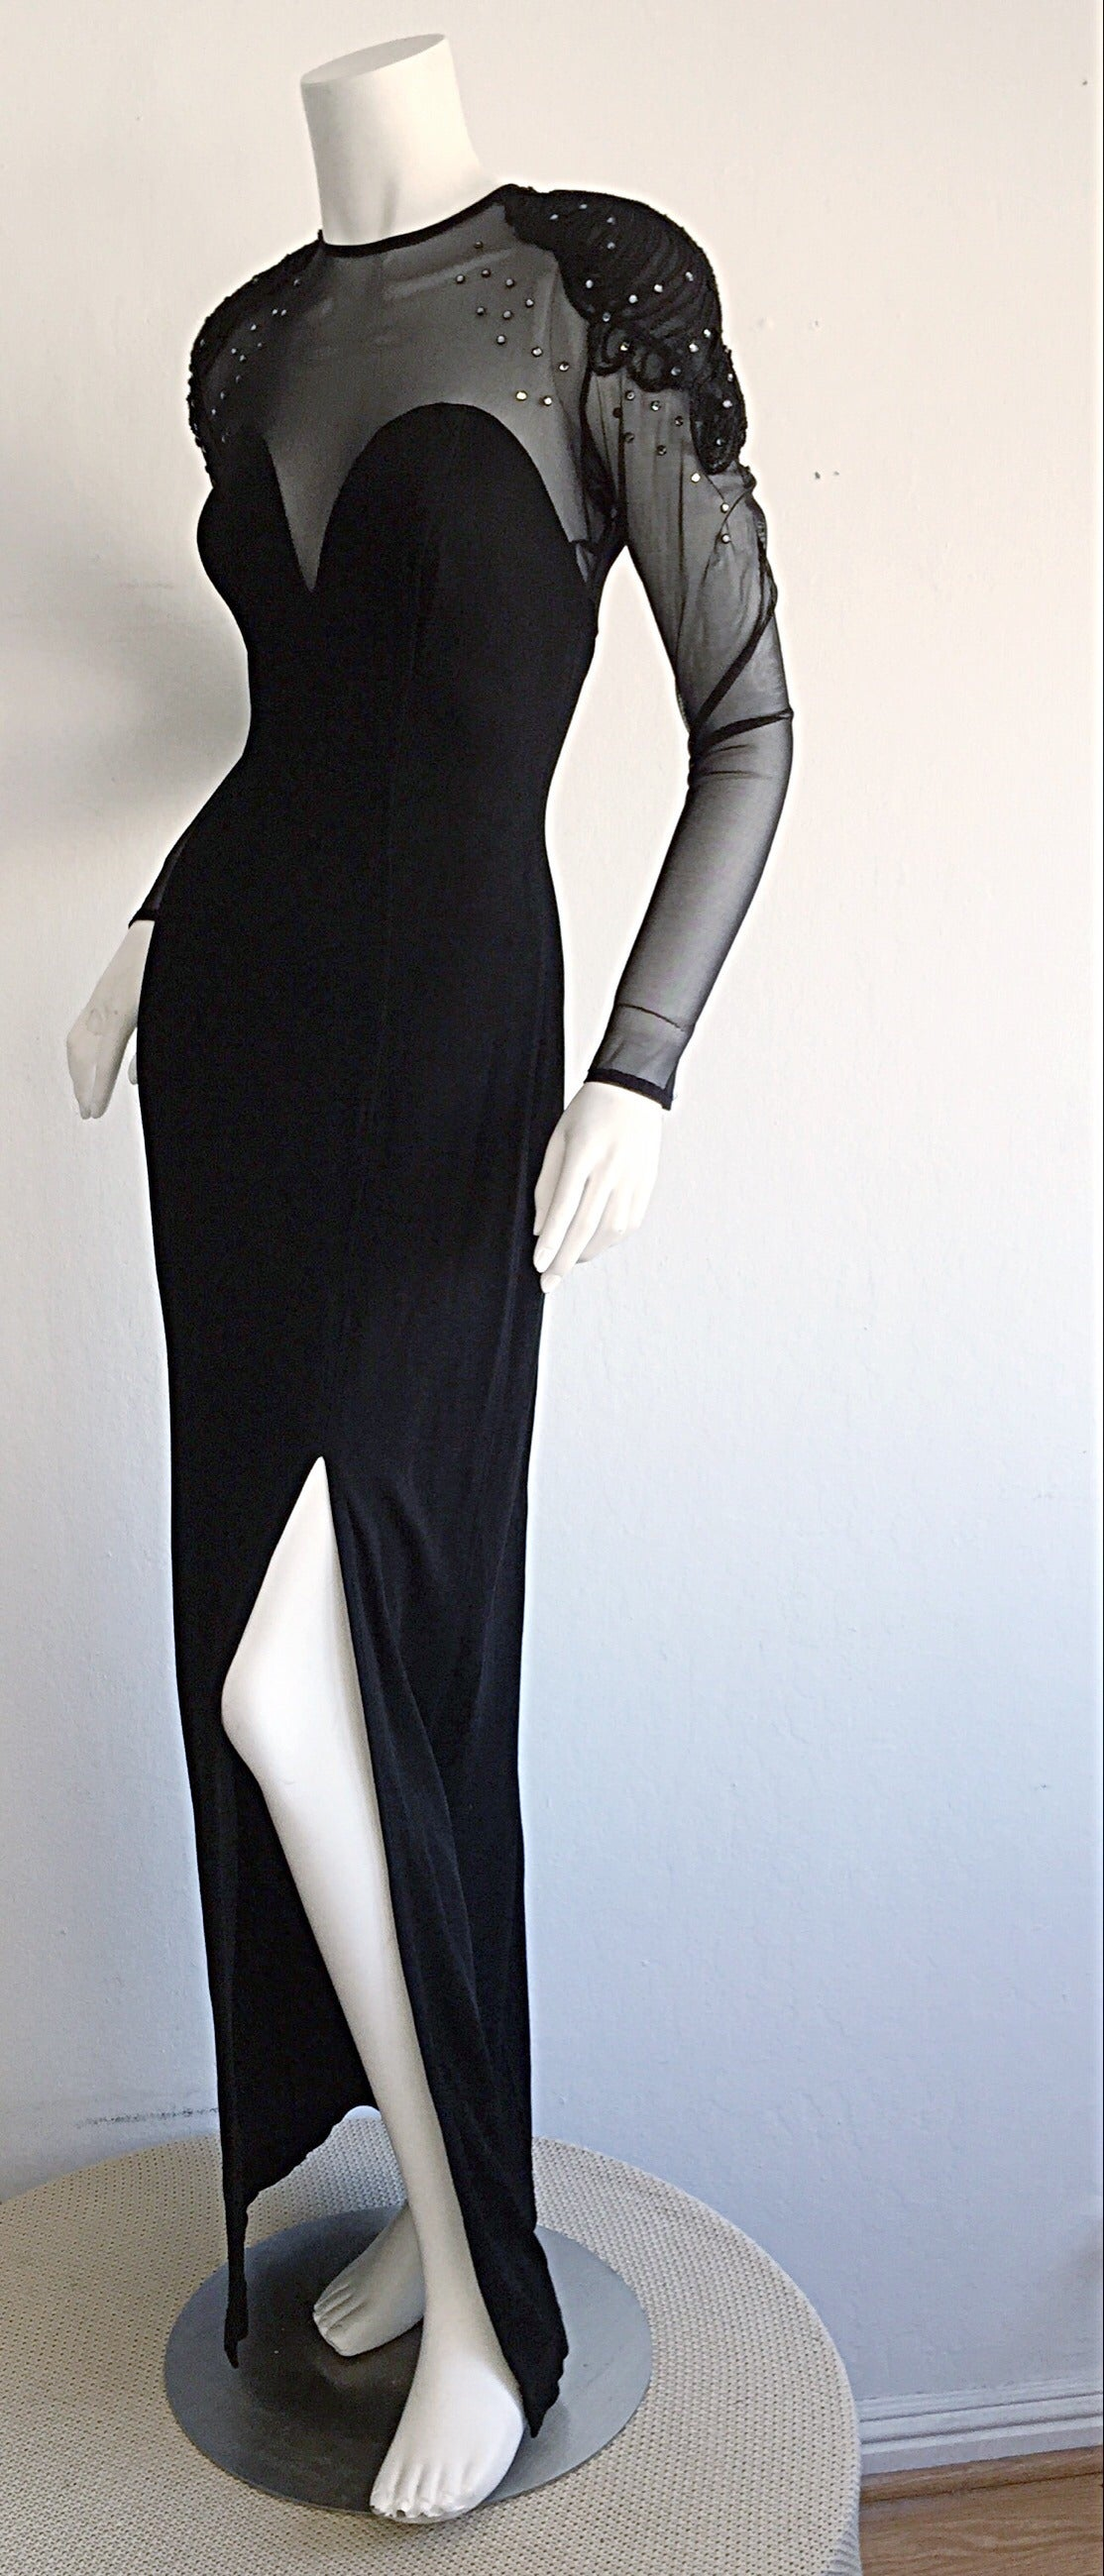 Sexy Vintage 1990s Black Cut - Out Bodycon Dress w/ Rhinestones For Sale 2